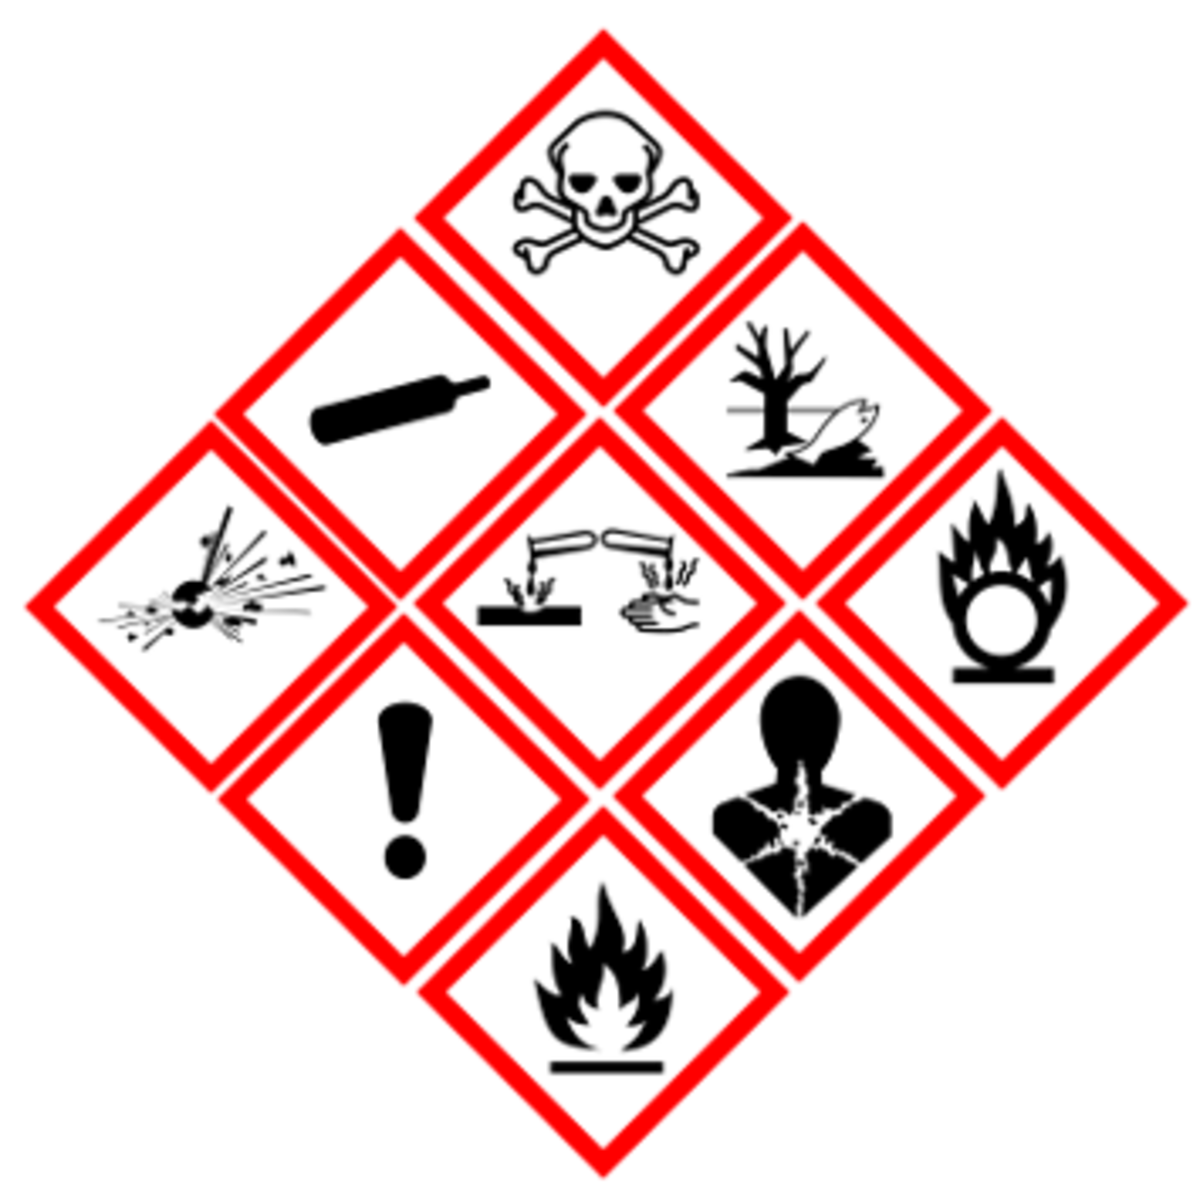 OSHA GHS Pictograms for Labels of Hazardous Materials